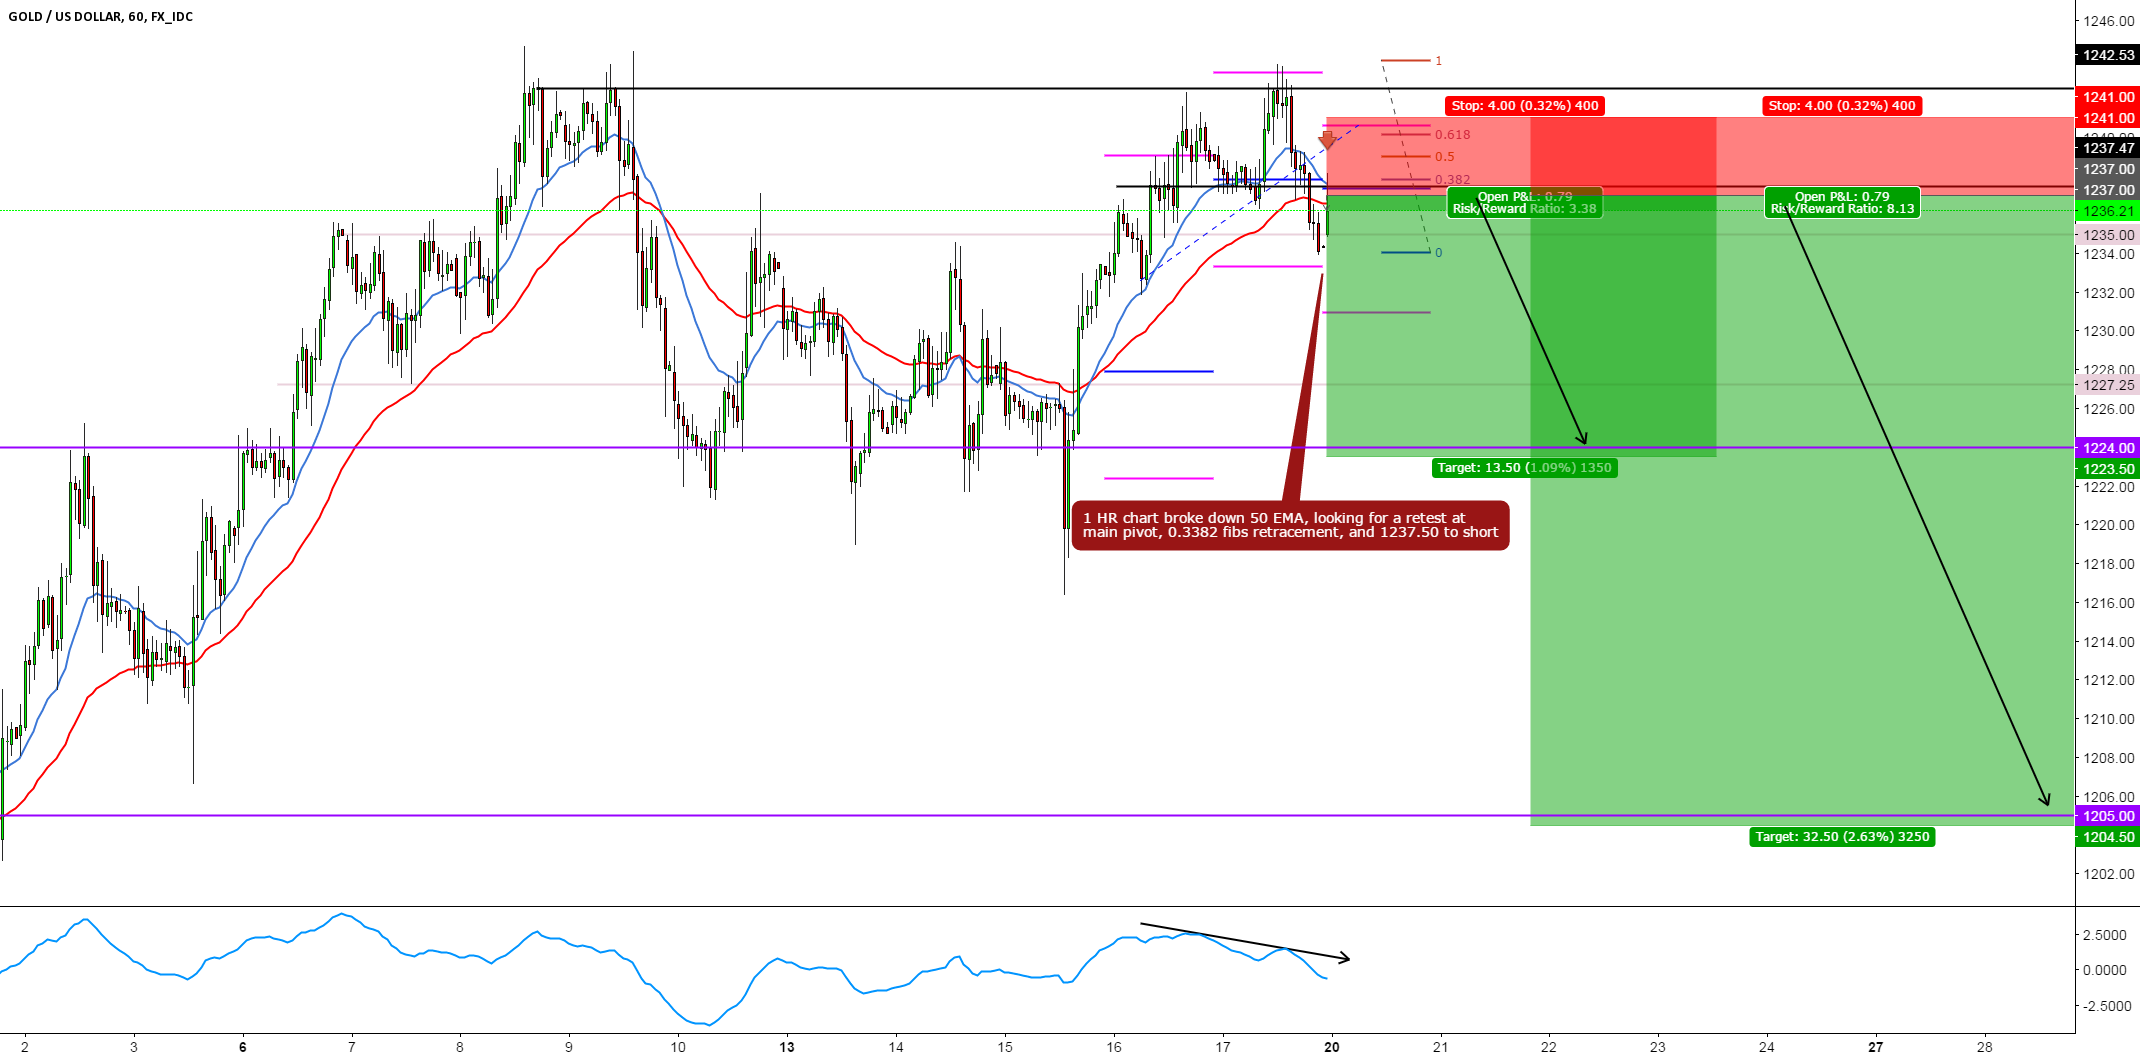 XAUUSD (GOLD) SHORT 1 HR BREAK AND RETEST TRADE SETUP